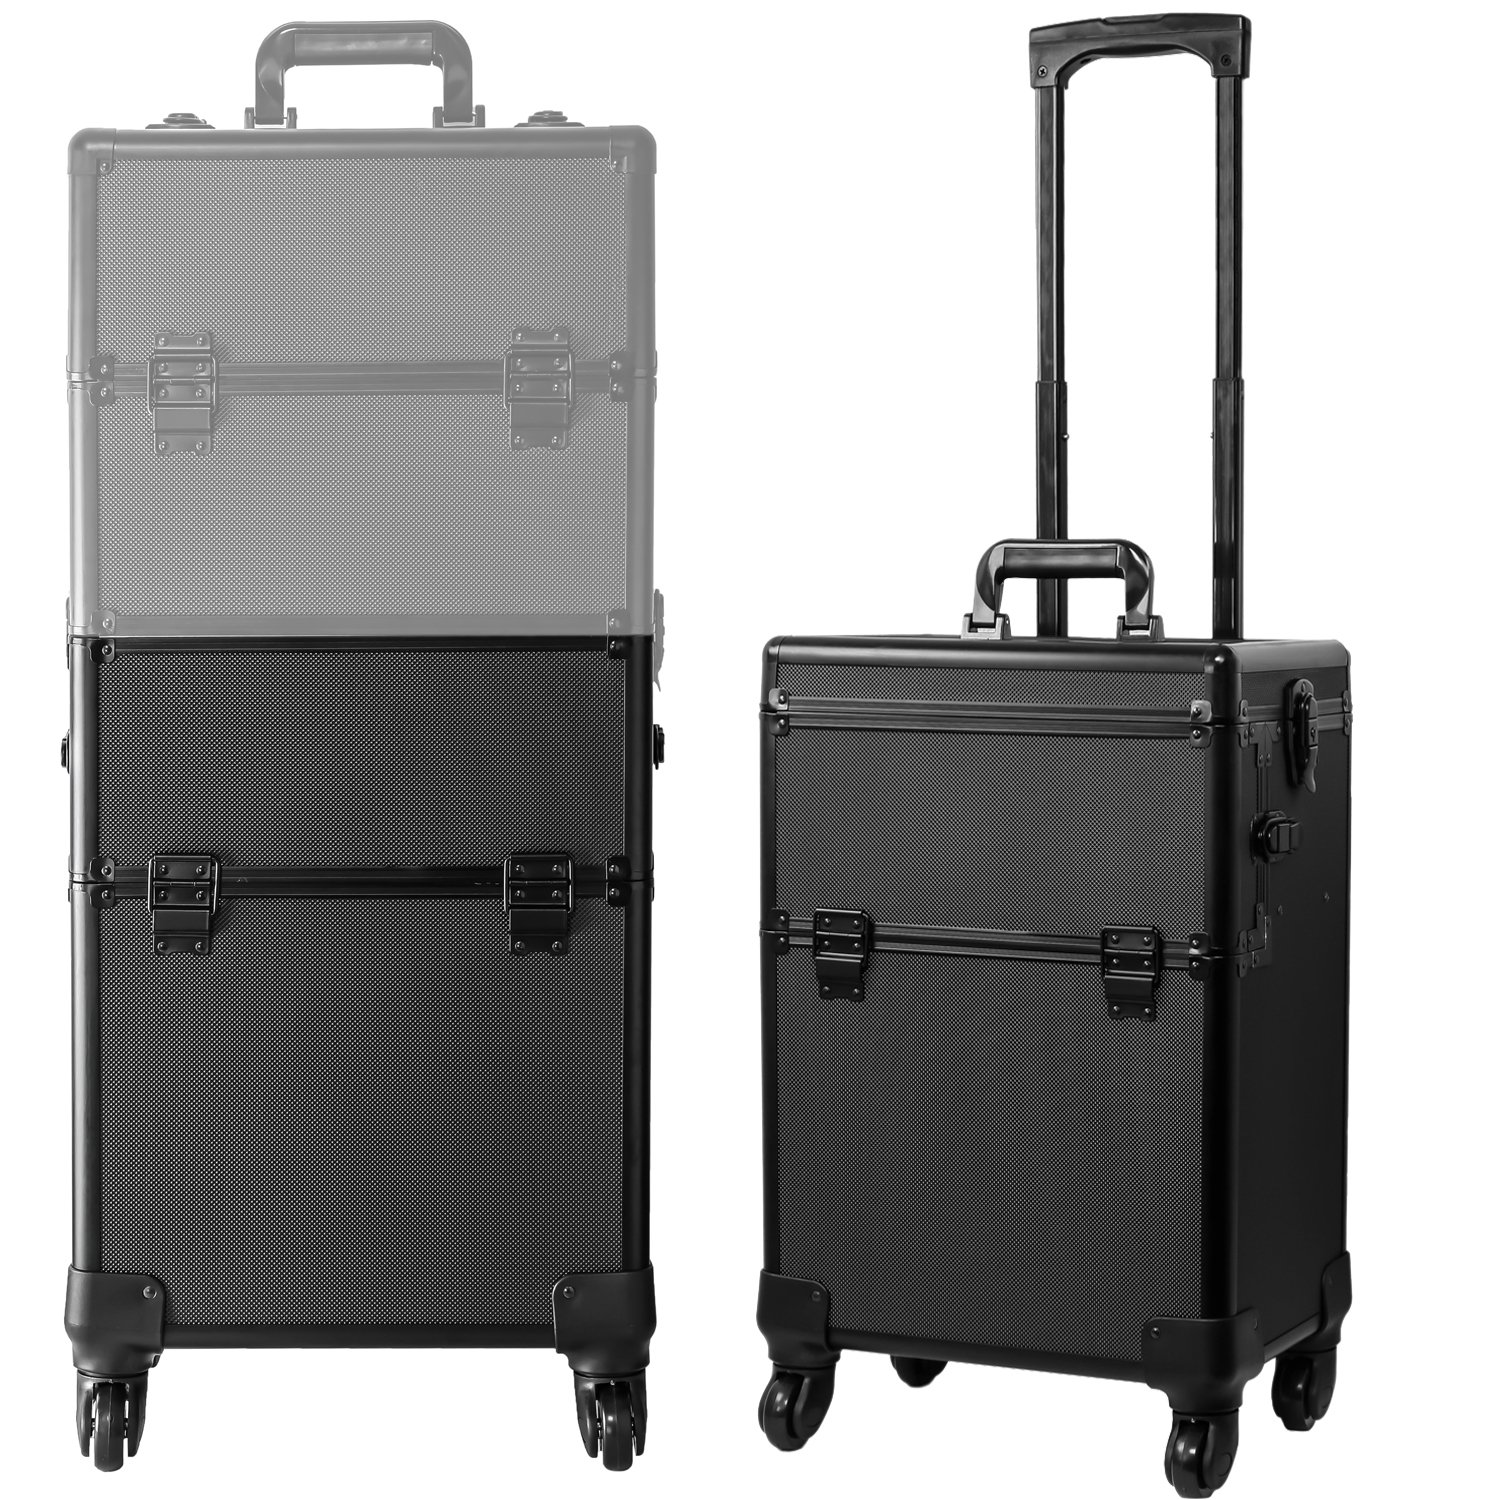 Koval Inc. 4-wheel Rolling 2in1 Makeup Train Cosmetic Case Black by KOVAL INC. (Image #7)